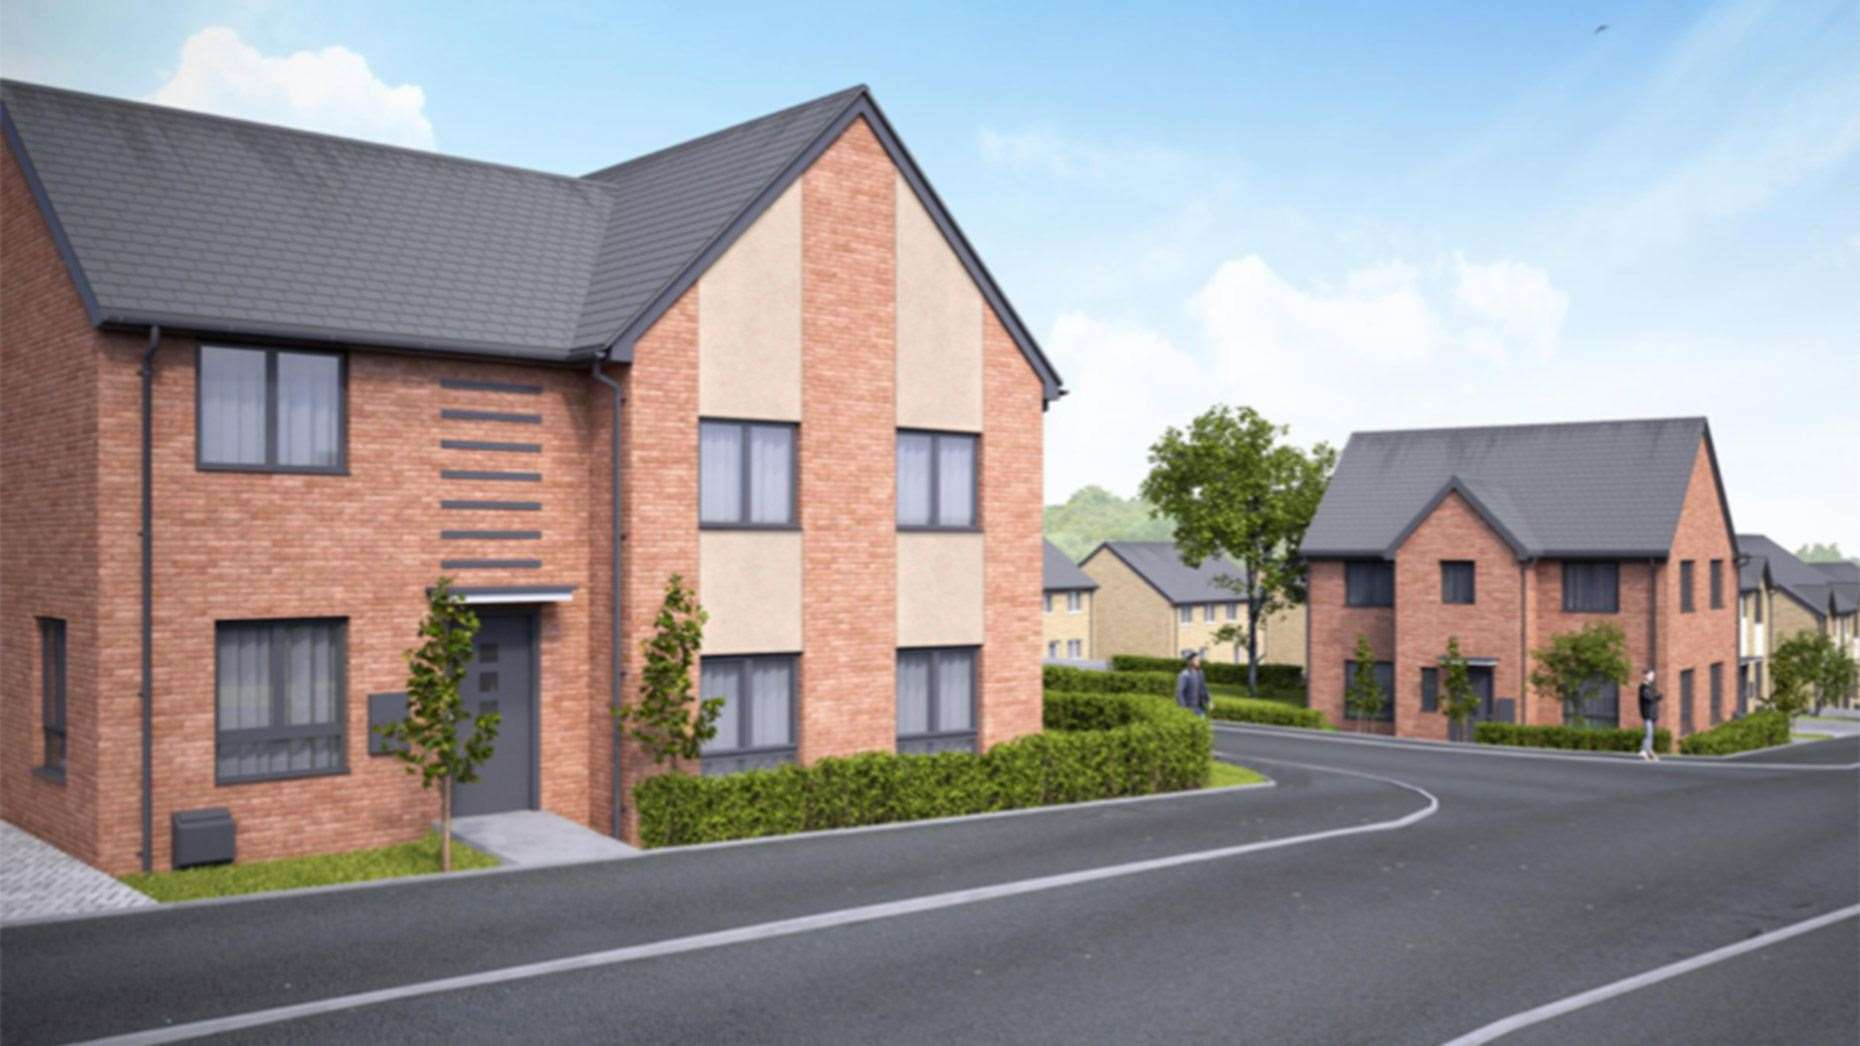 Design of the proposed development in Great Gonerby. (8595625)